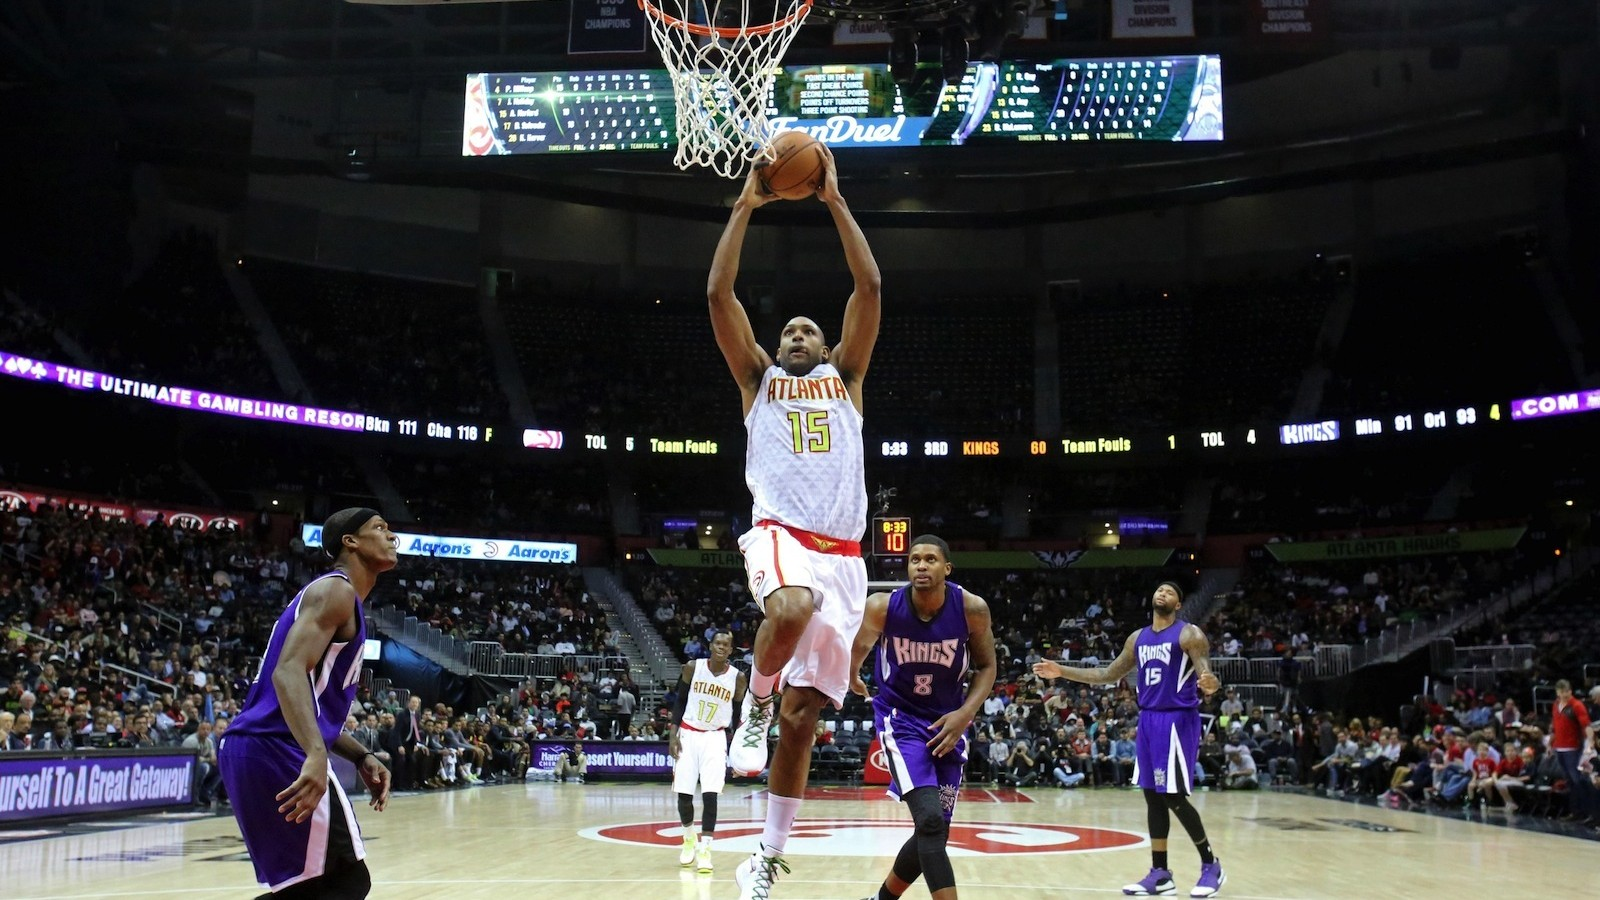 Hibbert and no 6 seed hawks al horford are two of the best centers - The Atlanta Hawks Are Not A Team That Delivers Much In The Way Of Inspiration But Their Centerpiece Star Still Manages To Make Reasonable Basketball